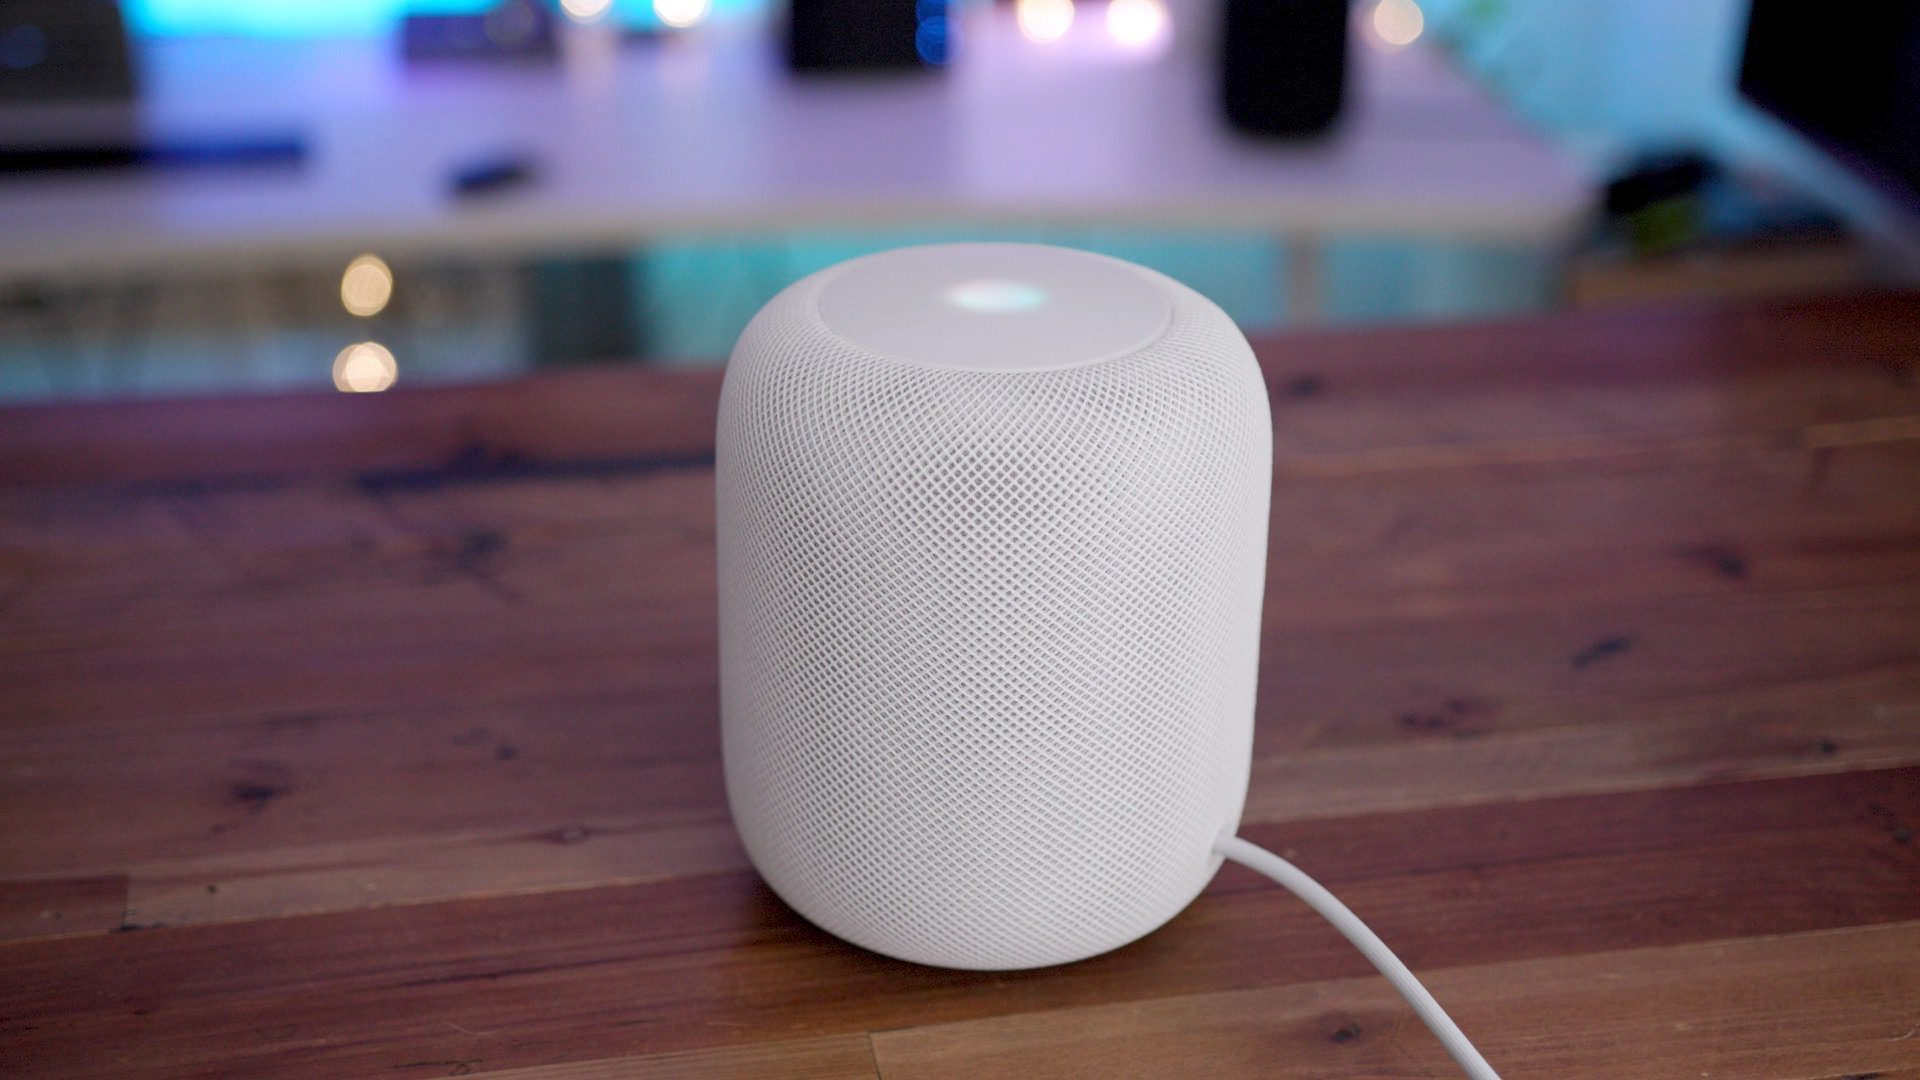 HomePod global availability expanding to China in early 2019